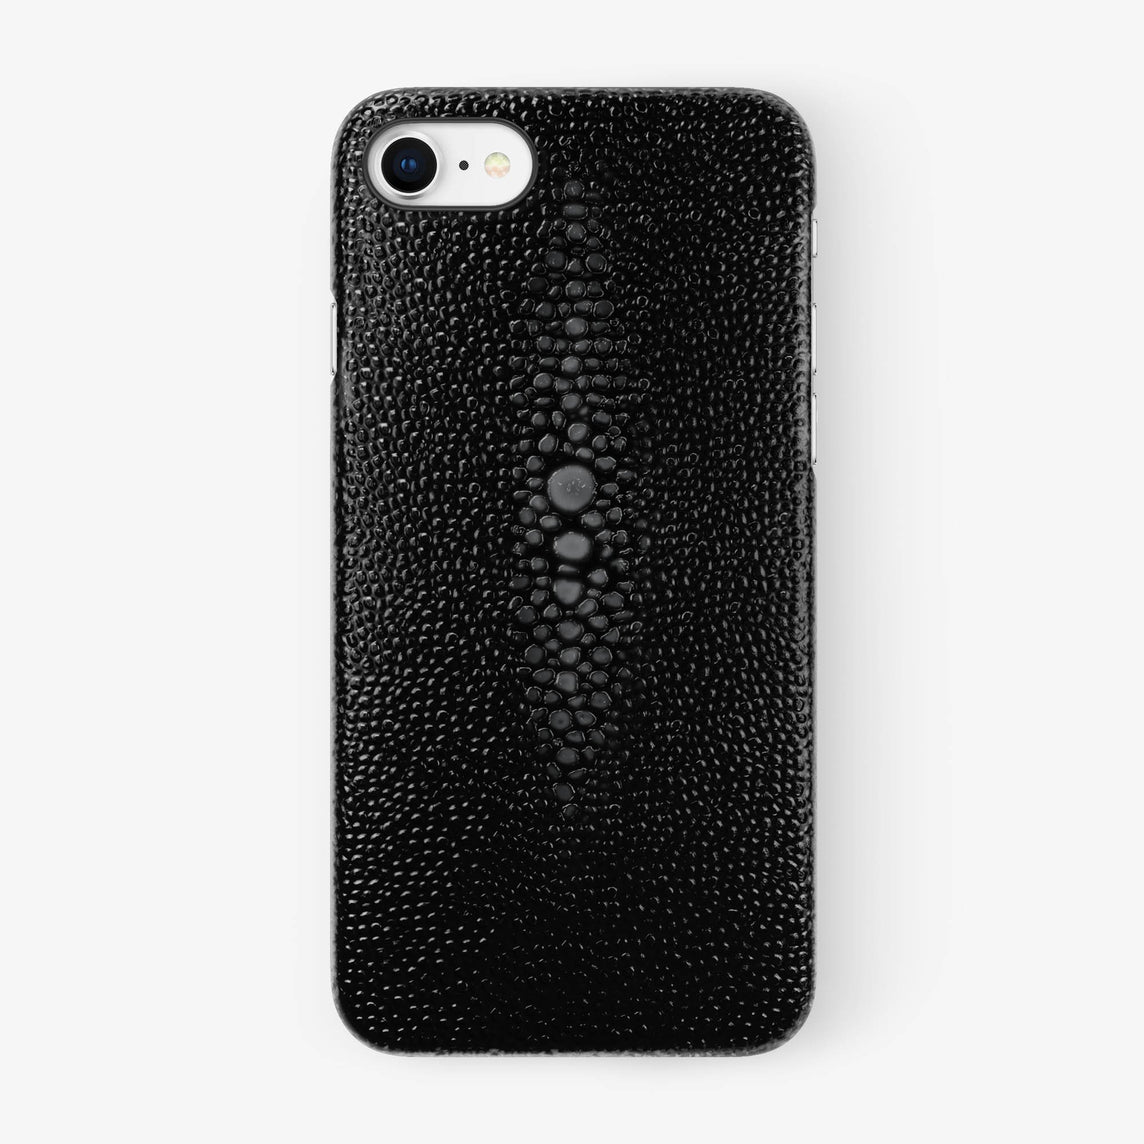 Stingray [iPhone Case] [model:iphone-7-8-case] [colour:black] [finishing:black]